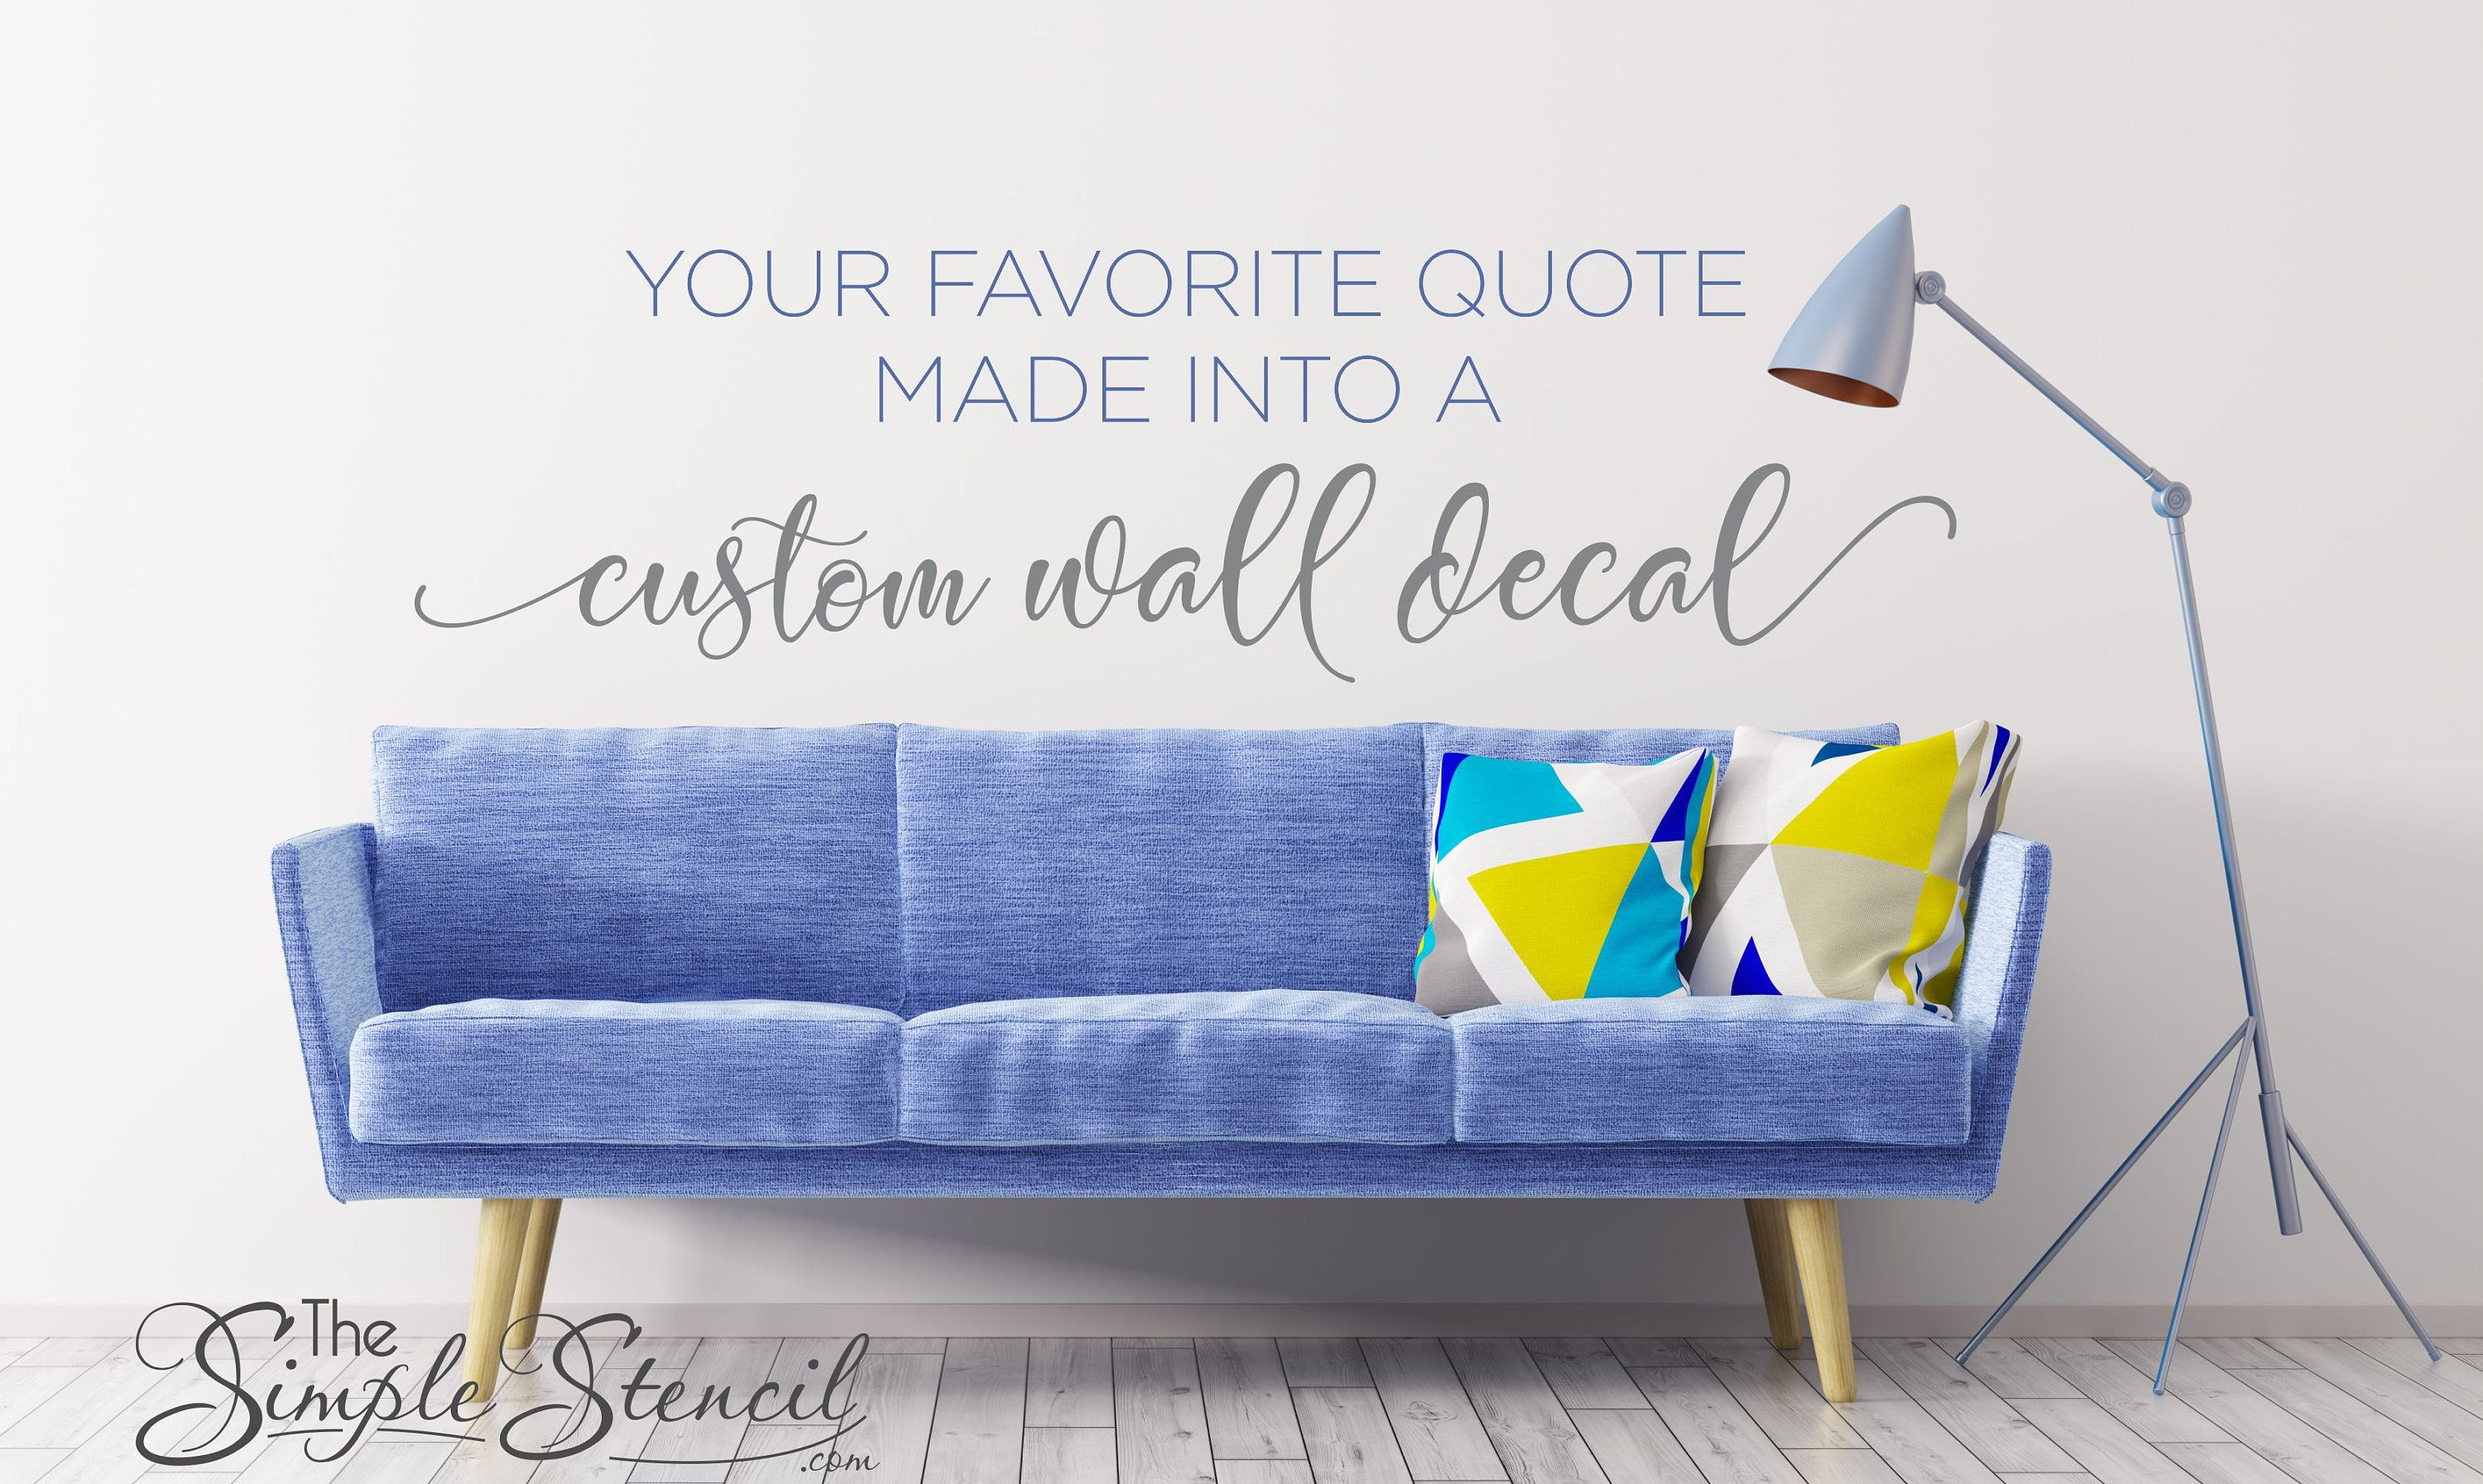 Custom wall decal quote create your own wall words removable self adhesive wall stickers